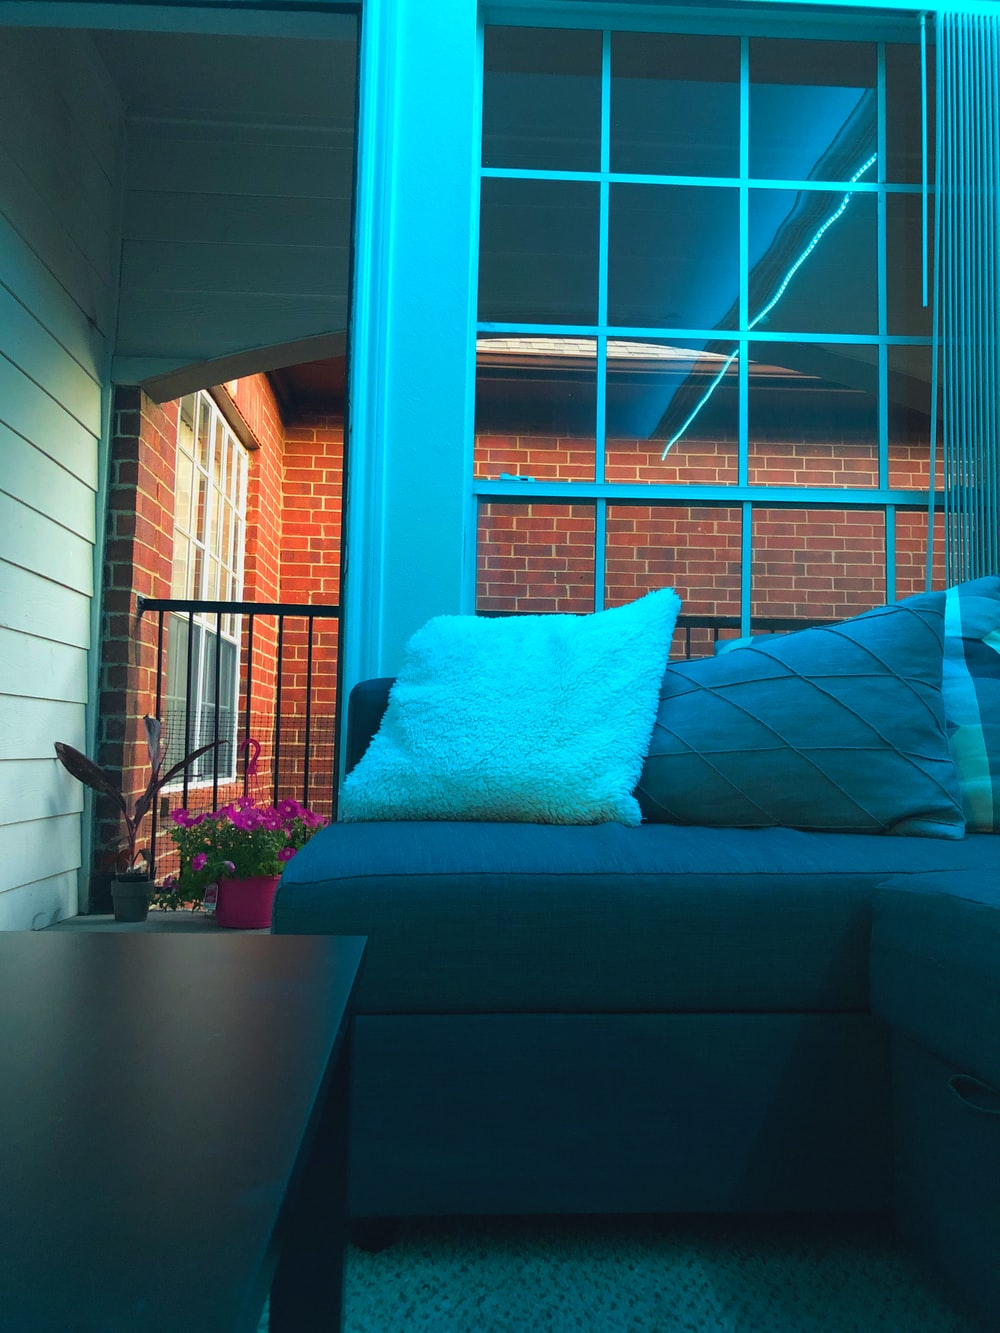 Sofa With Pillows Near Opened Door Photo Free Couch Image On Unsplash